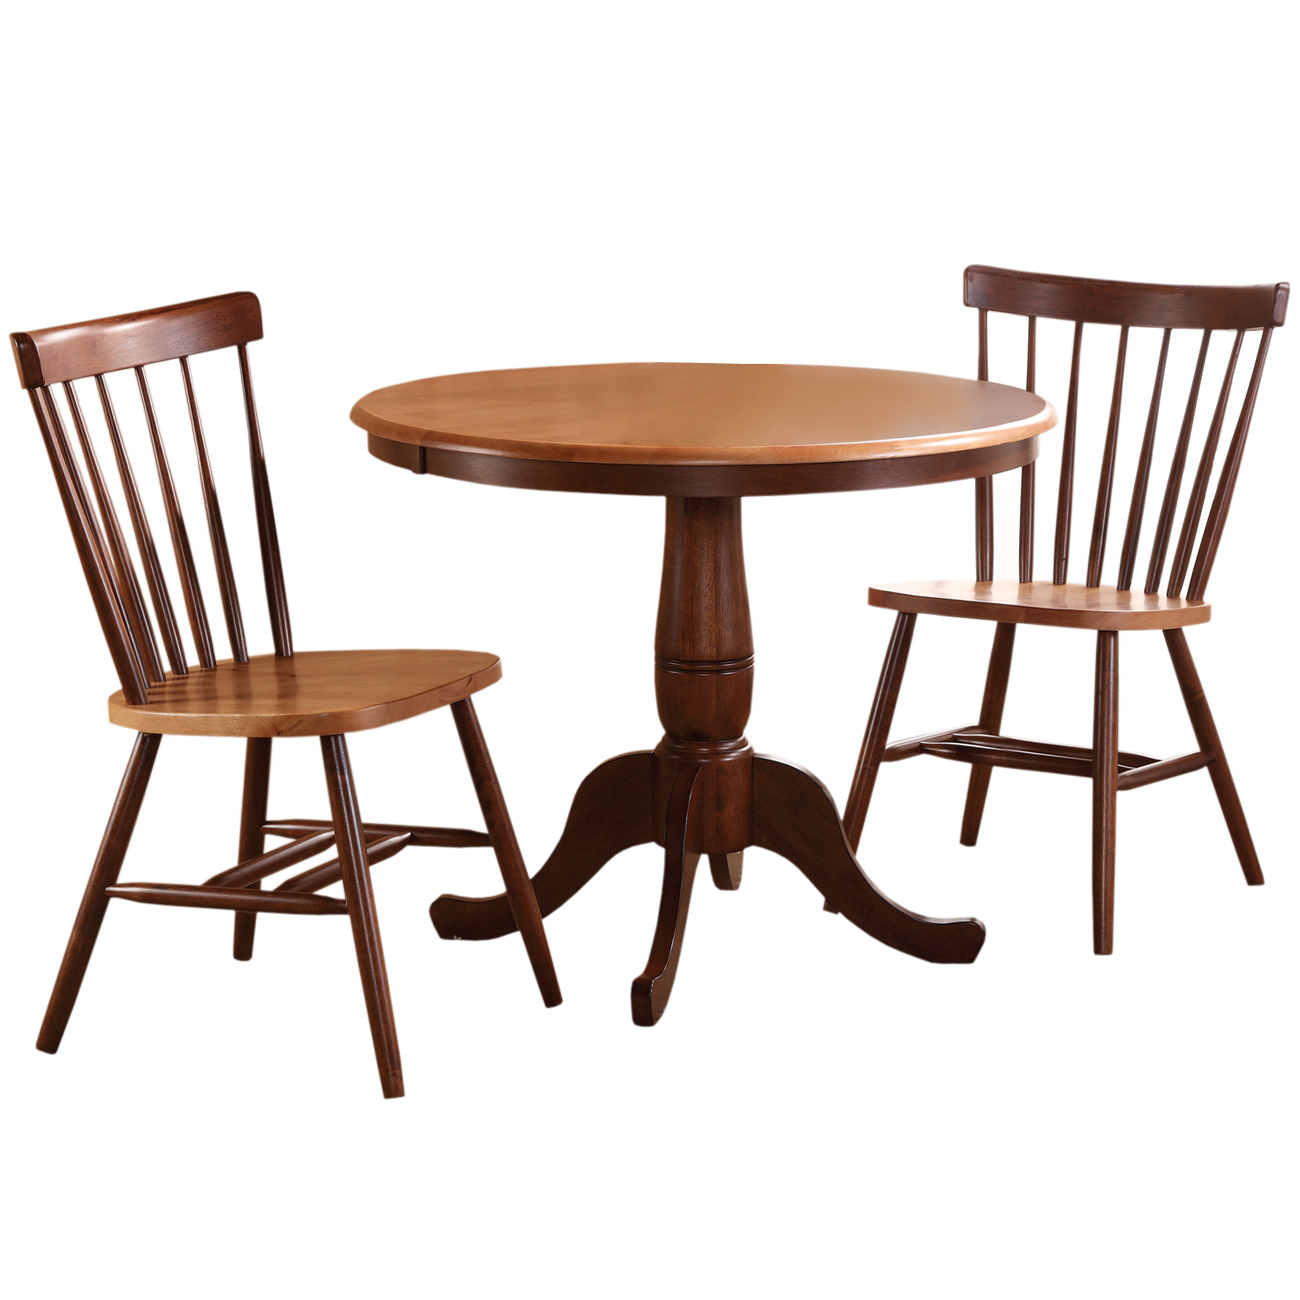 International Concepts Piperton 36 in. Round Pedestal Dining Table Set with 2 Copenhagen Chairs